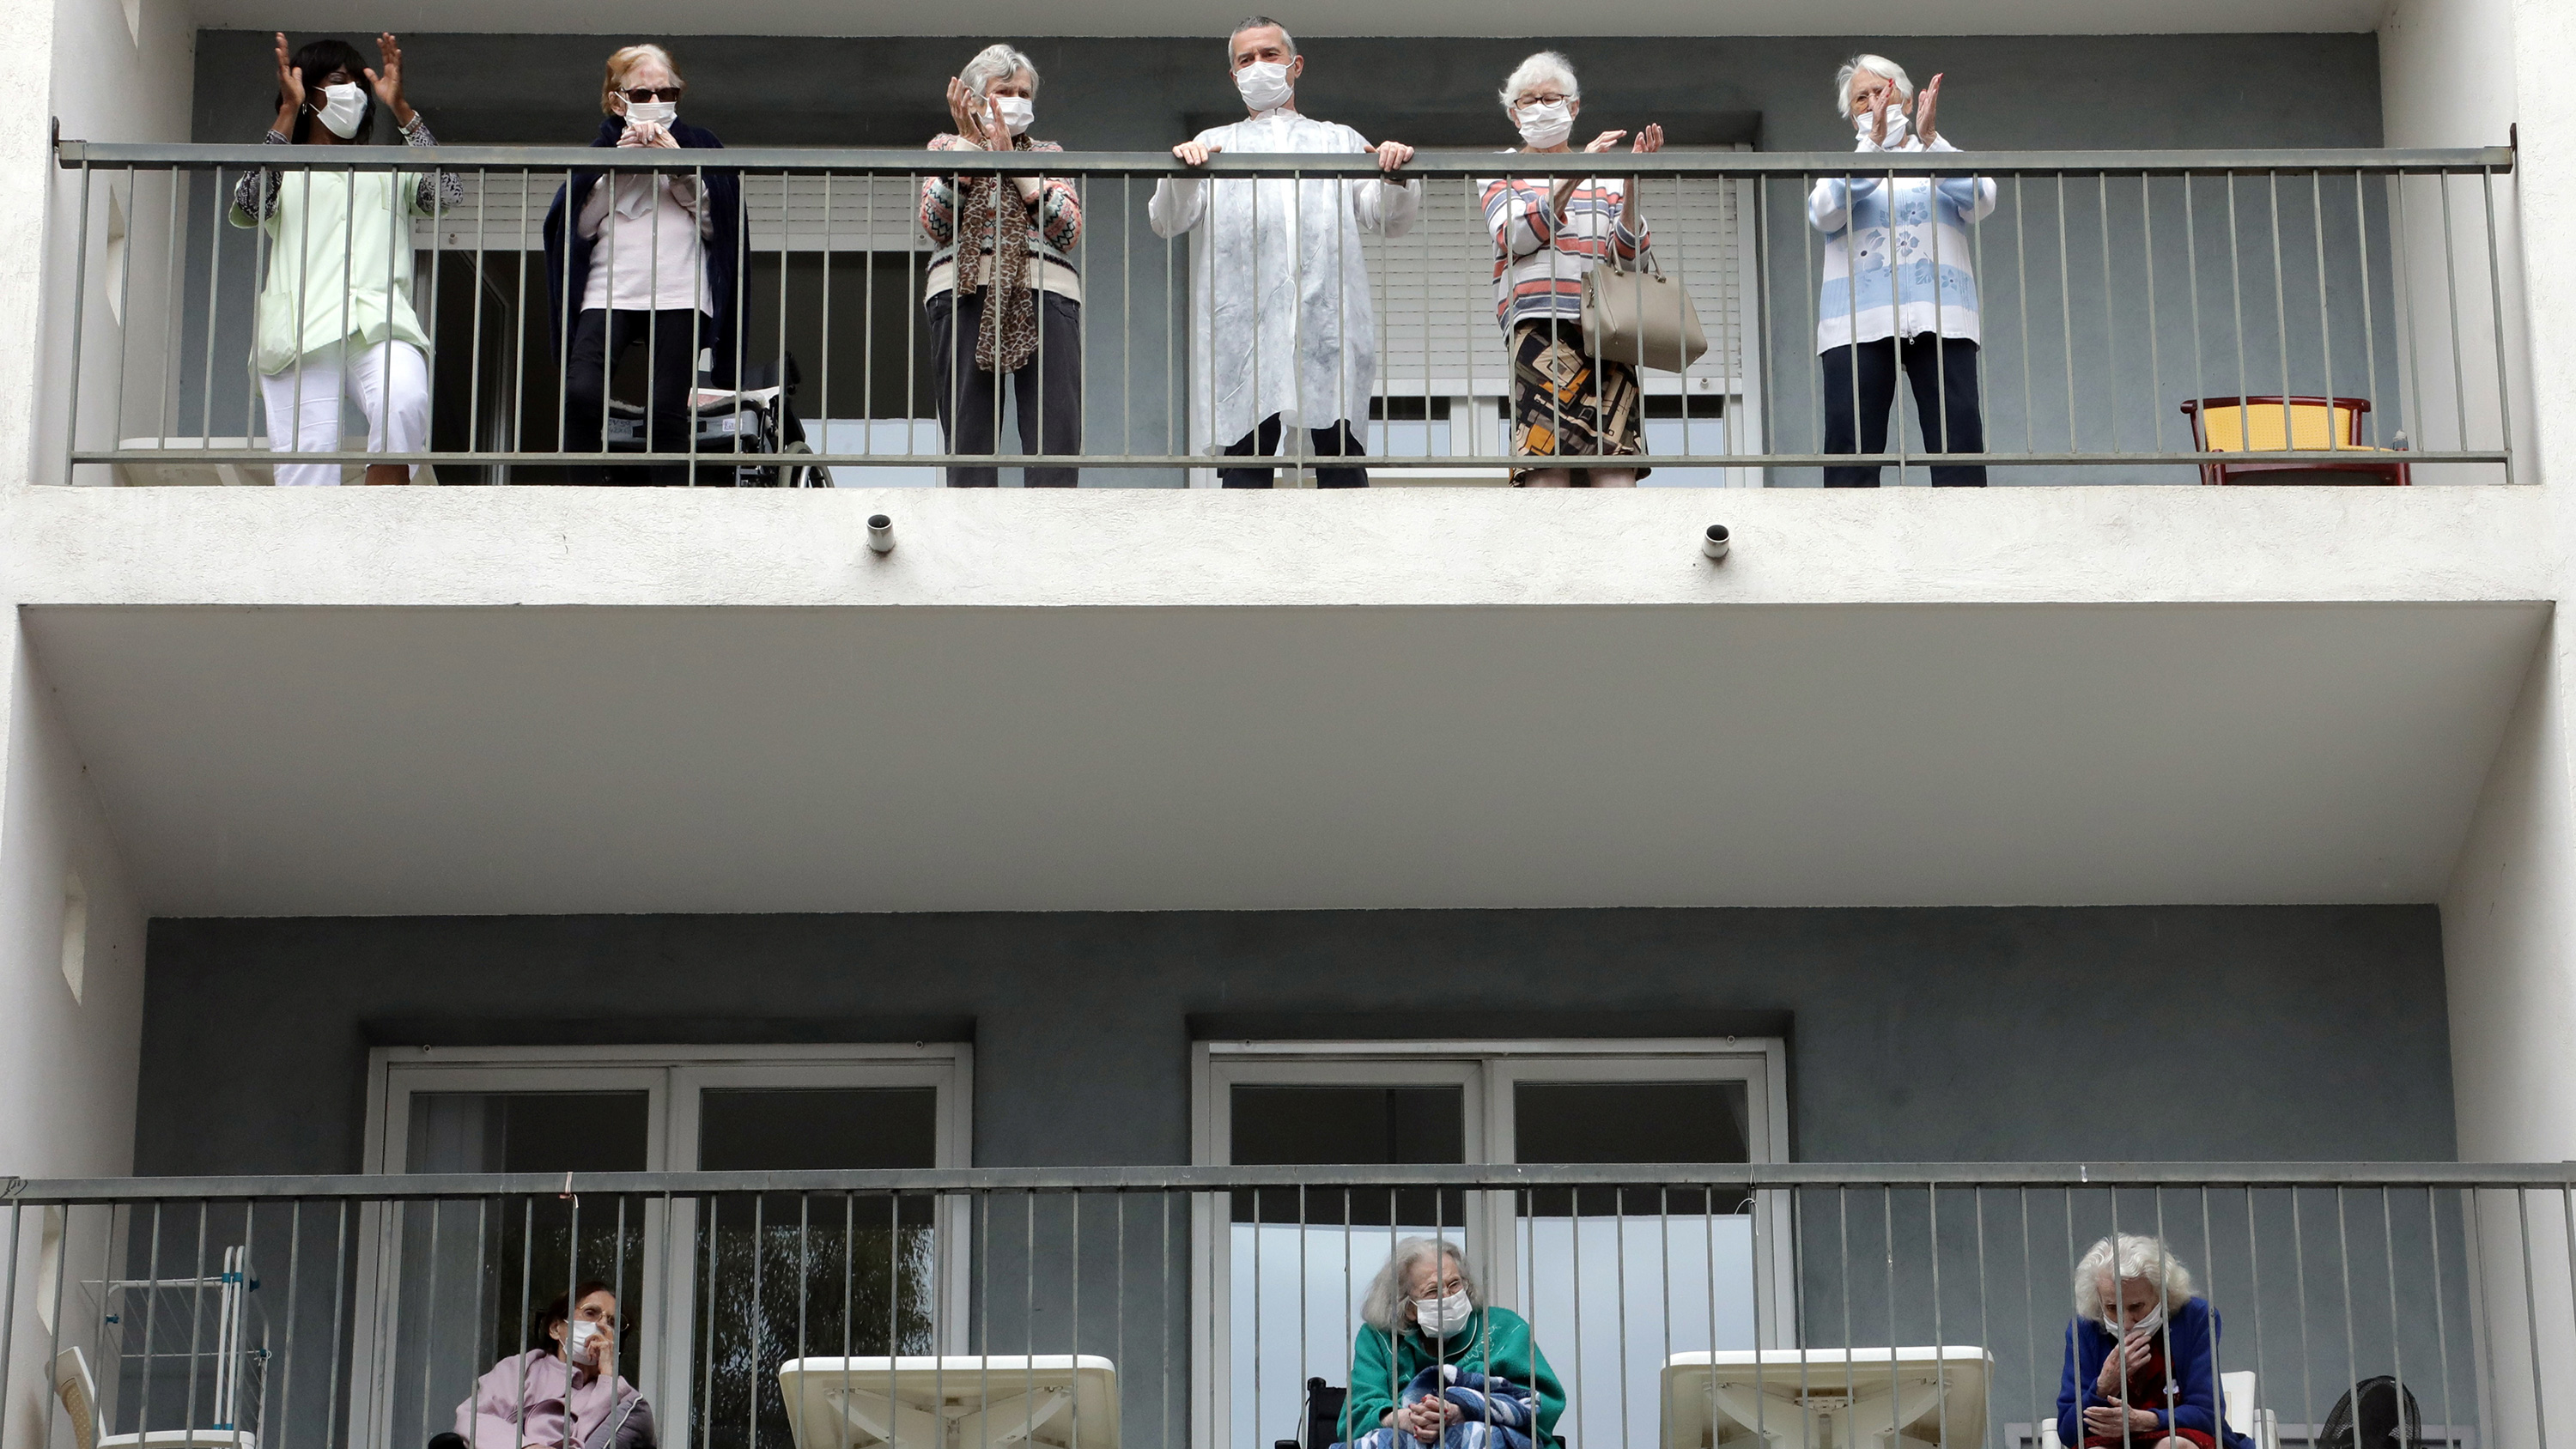 The photo shows two rows of balconies lined with elderly people watching the performance.